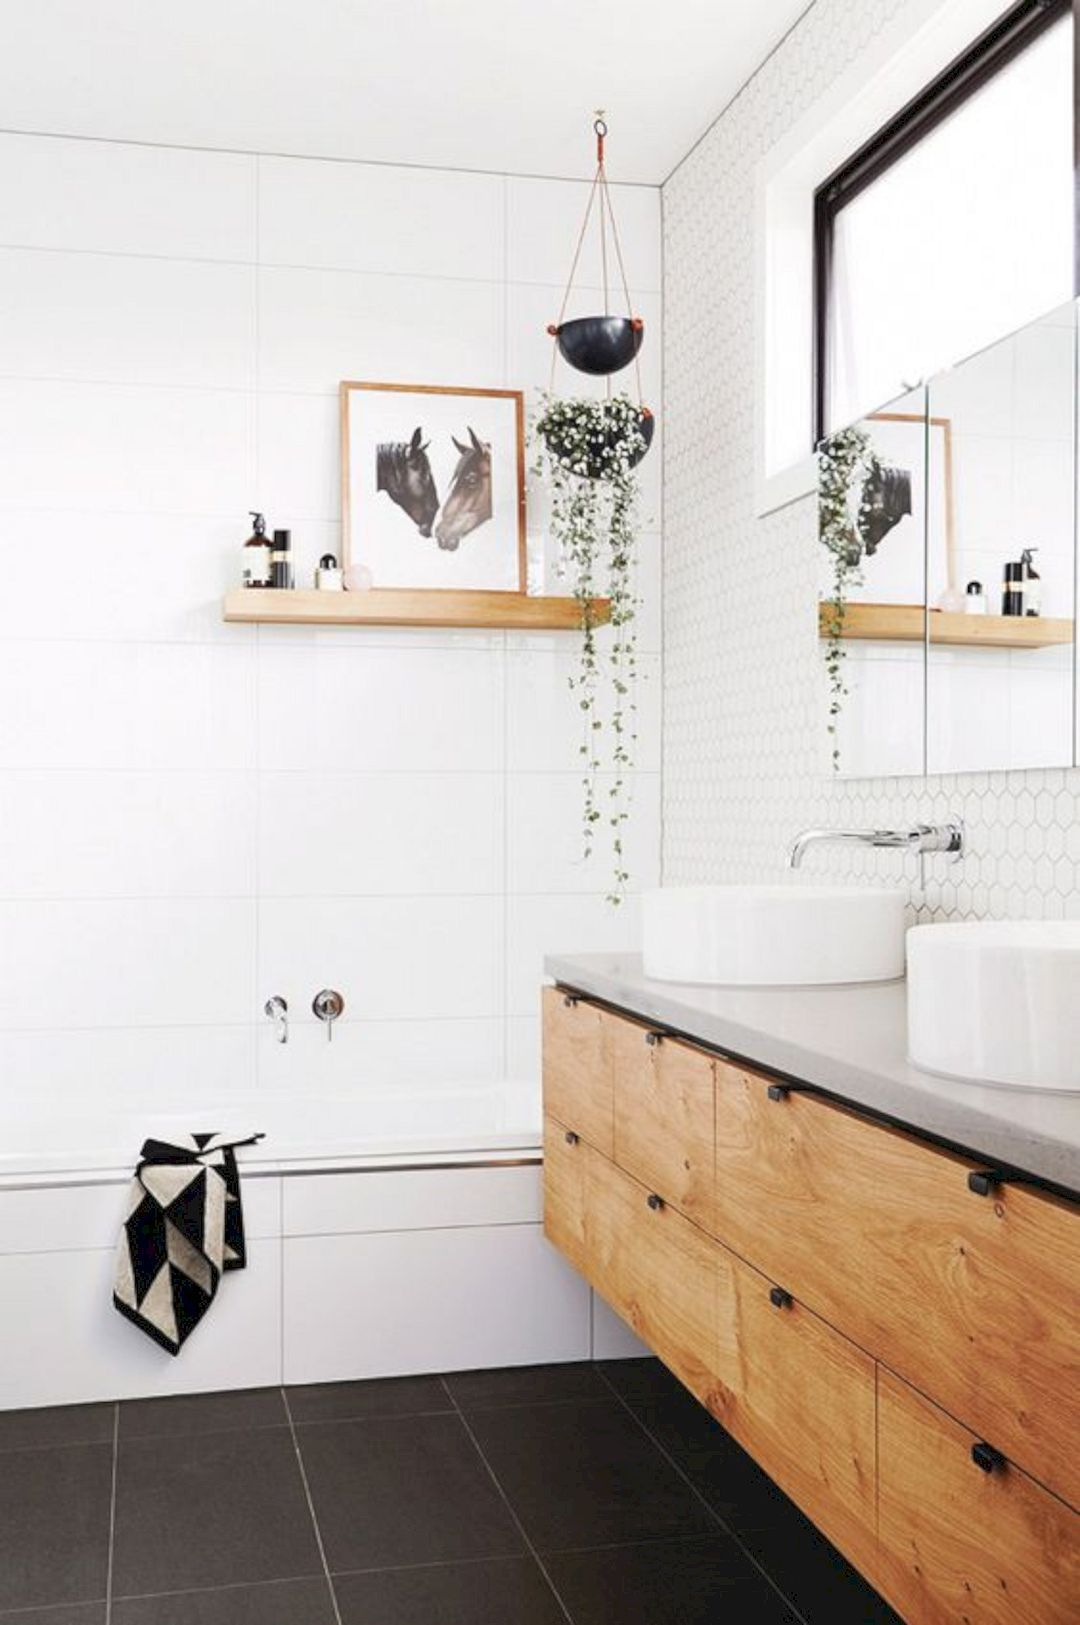 15 Inspiring Bathroom Design Ideas with IKEA | Bathroom designs ...